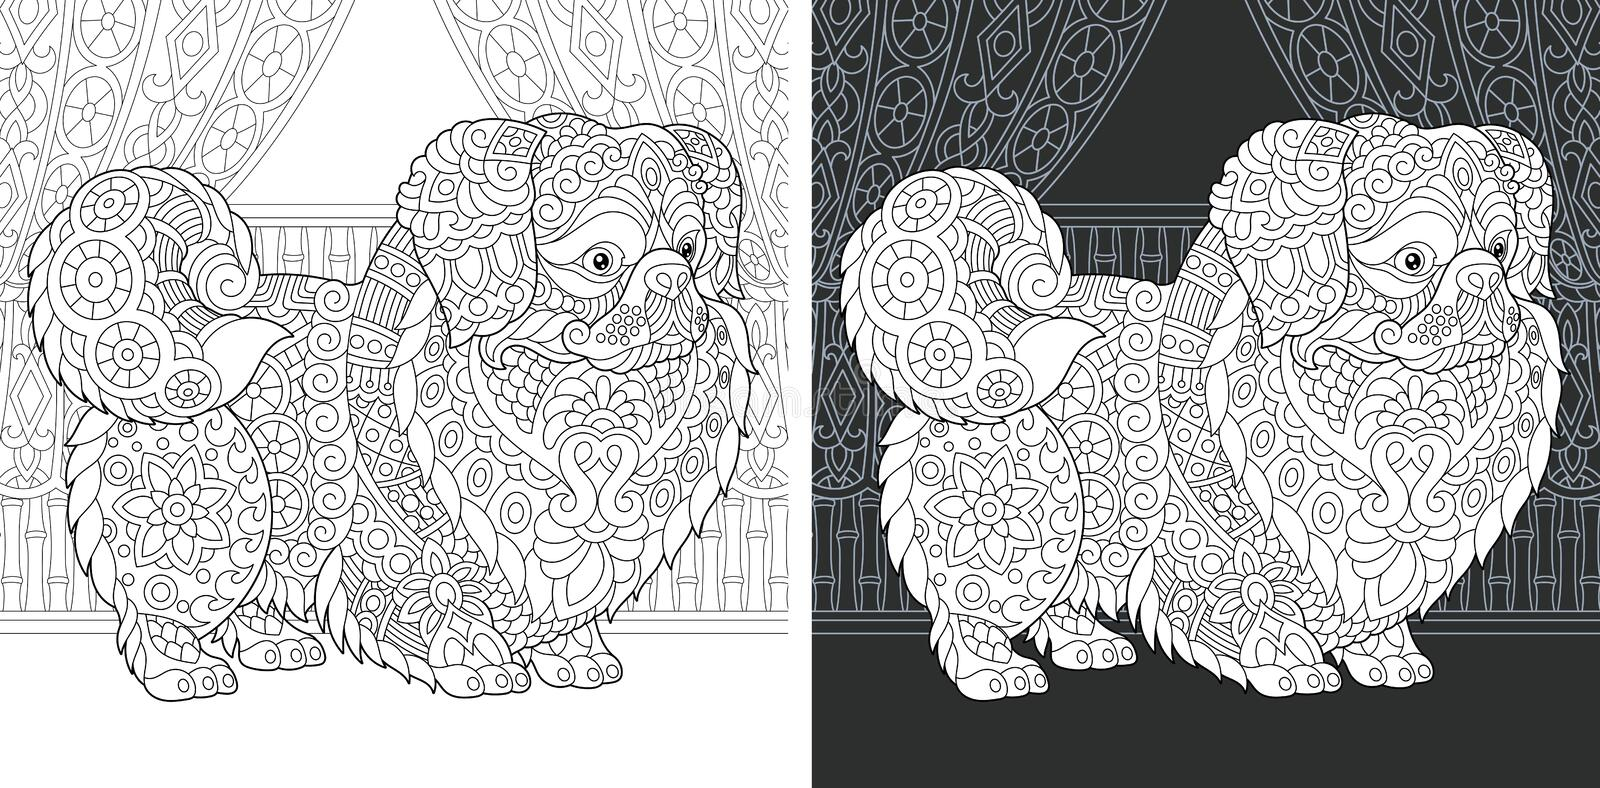 Coloring book page with pekingese dog royalty free stock images